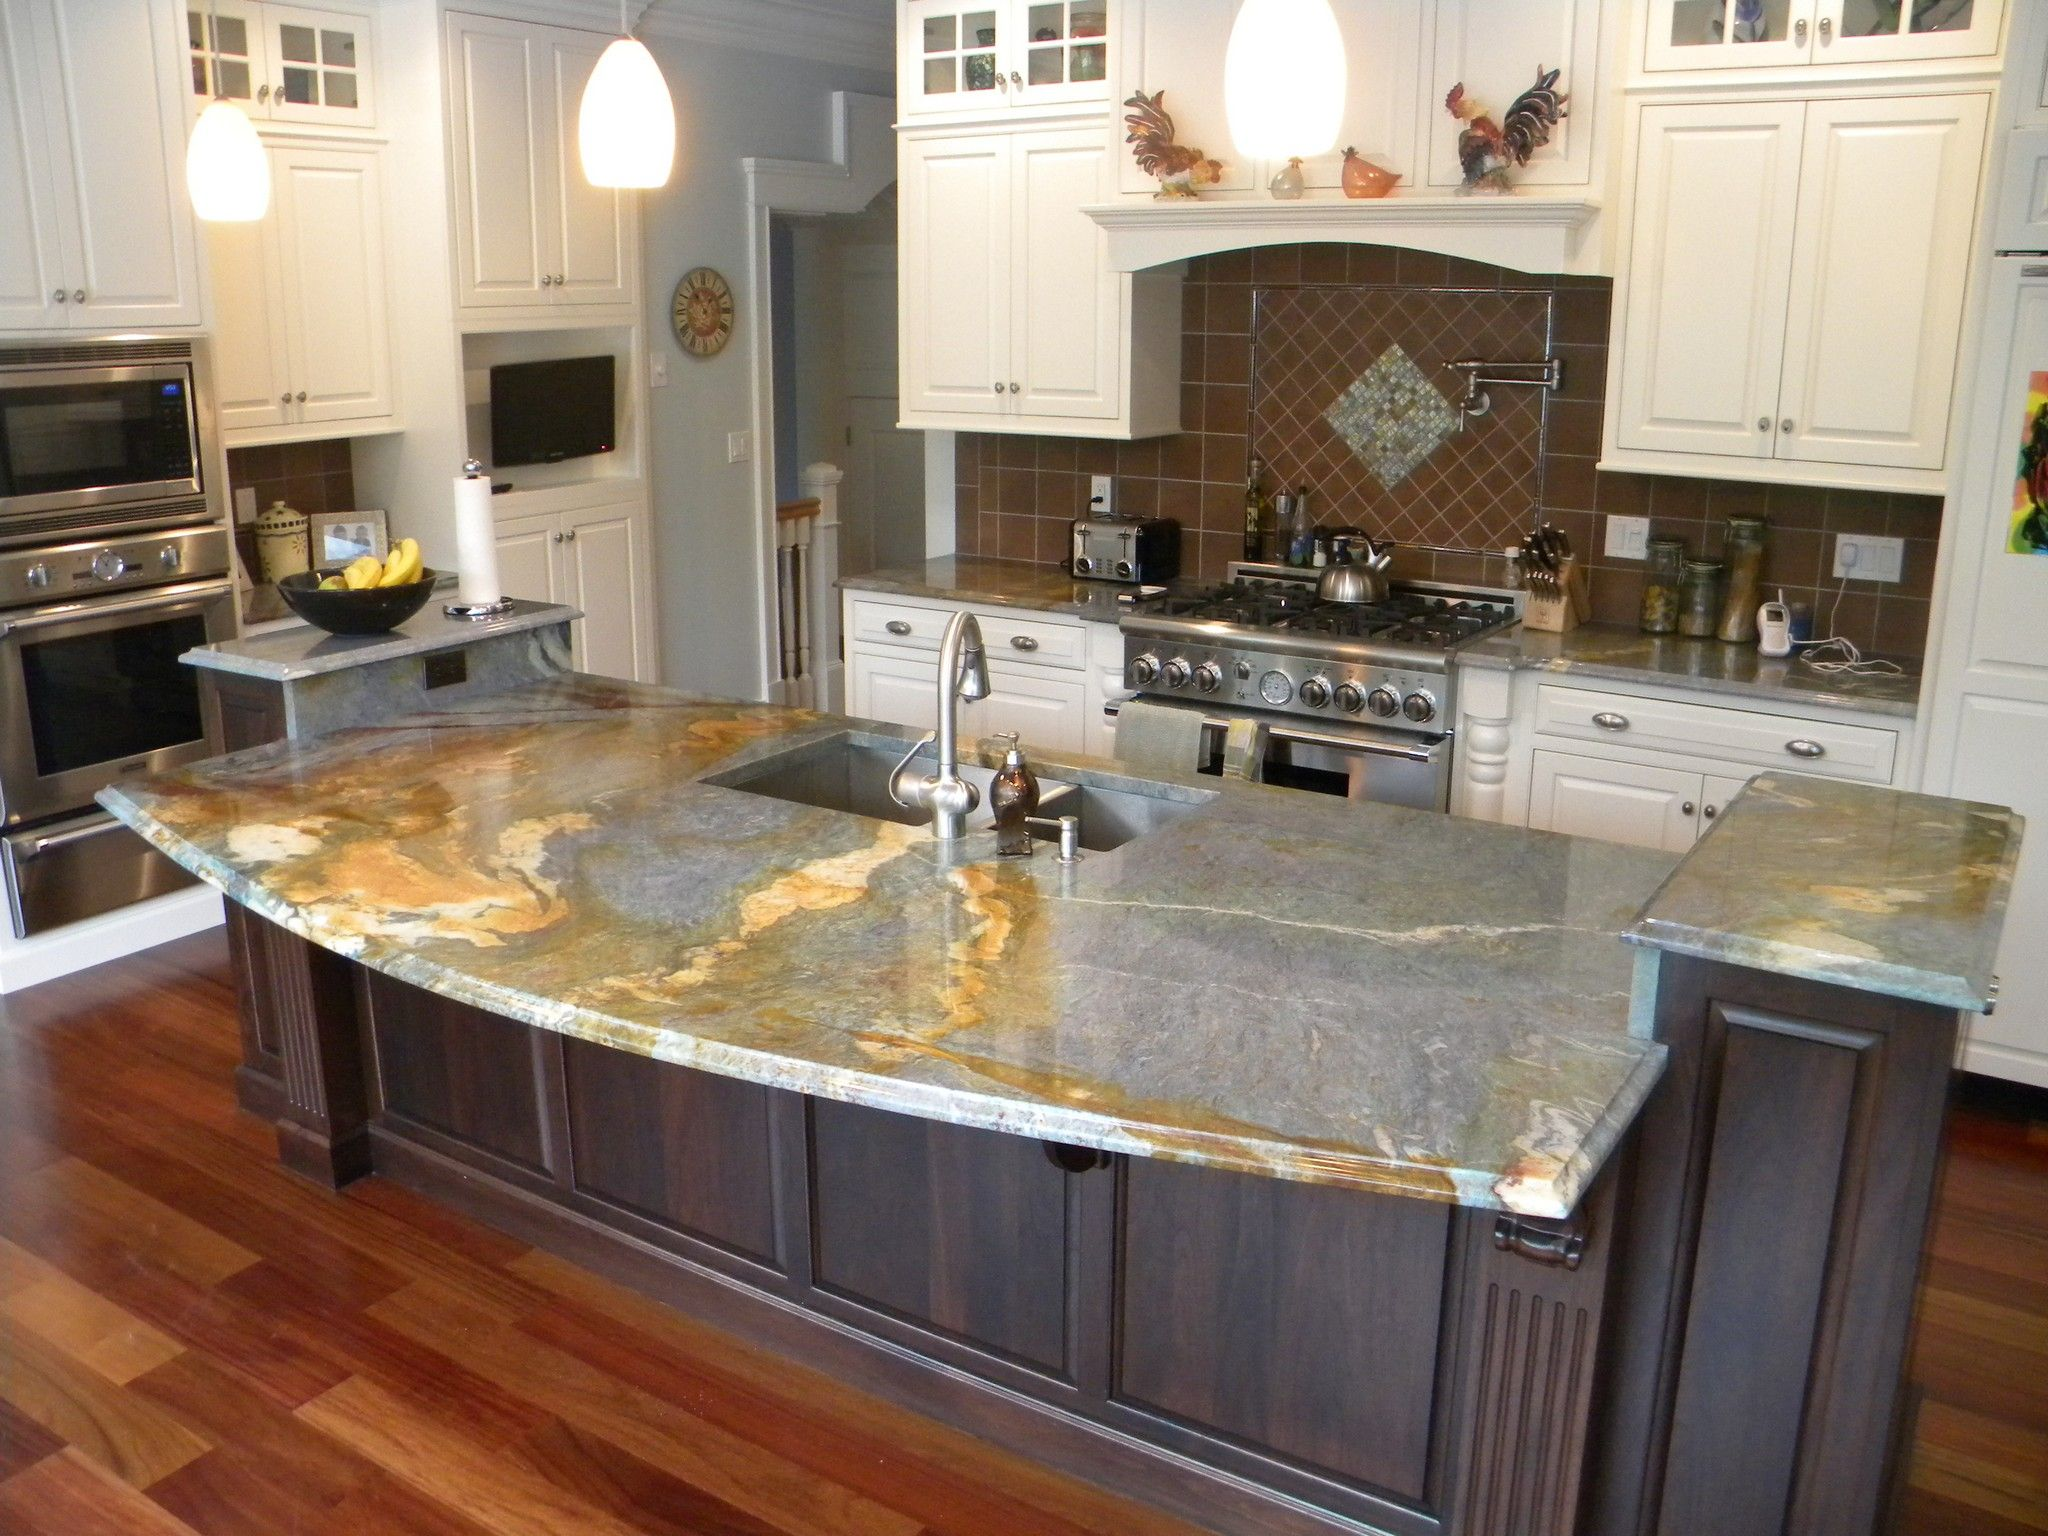 Waterfall countertop granite countertops marble countertops and quartz countertops